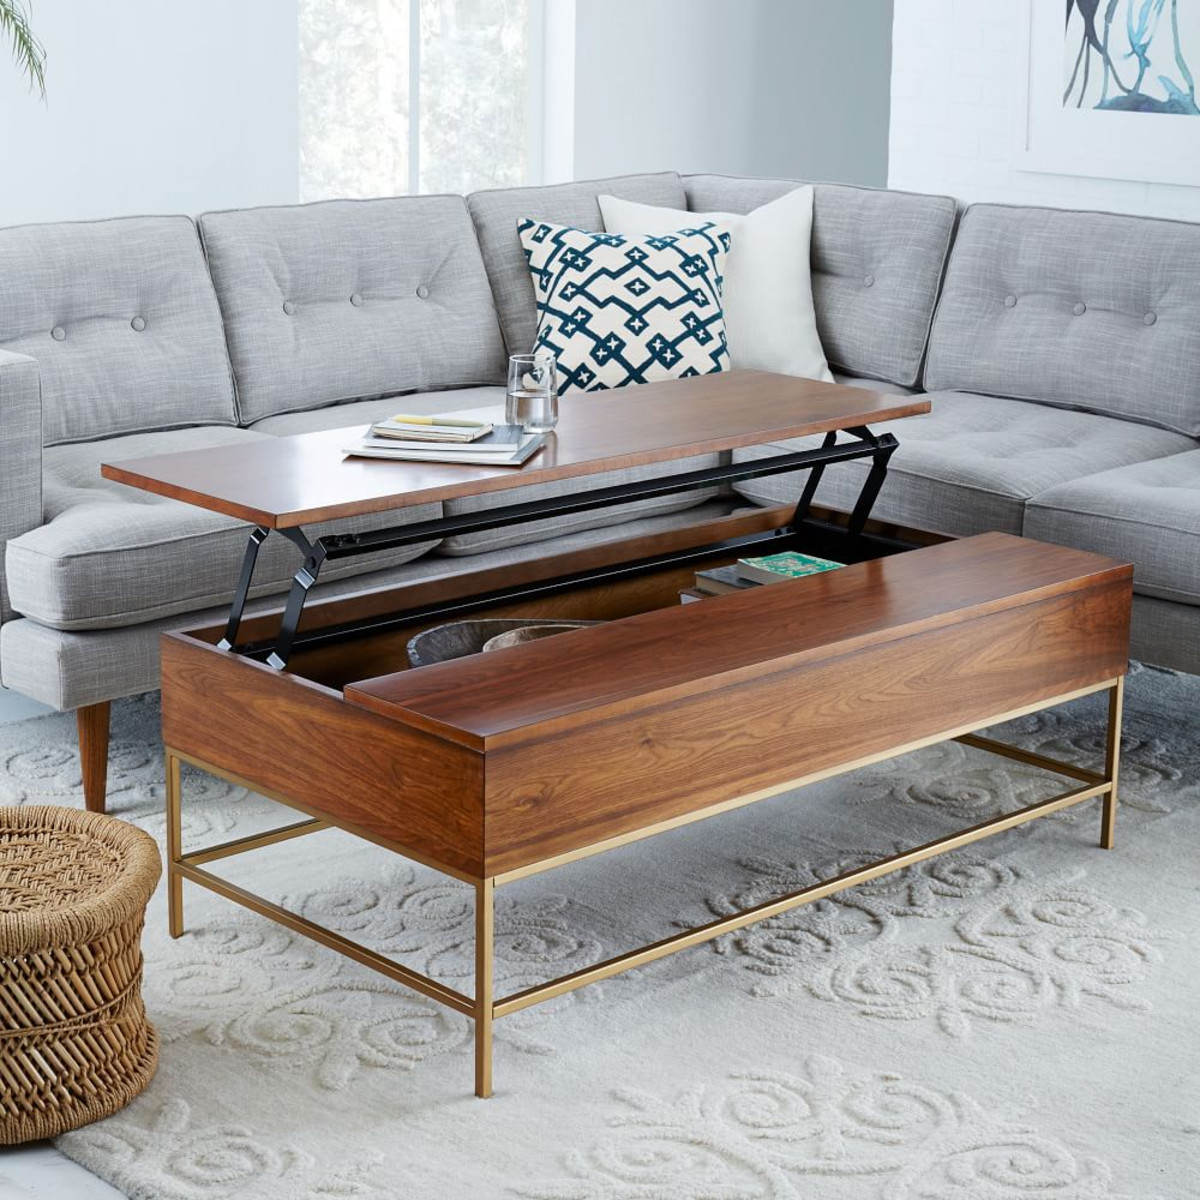 best coffee tables for small spaces west elm storage table walnut antique brass end space saving your living room iron with glass top nesting clearance clover saarinen grey walls